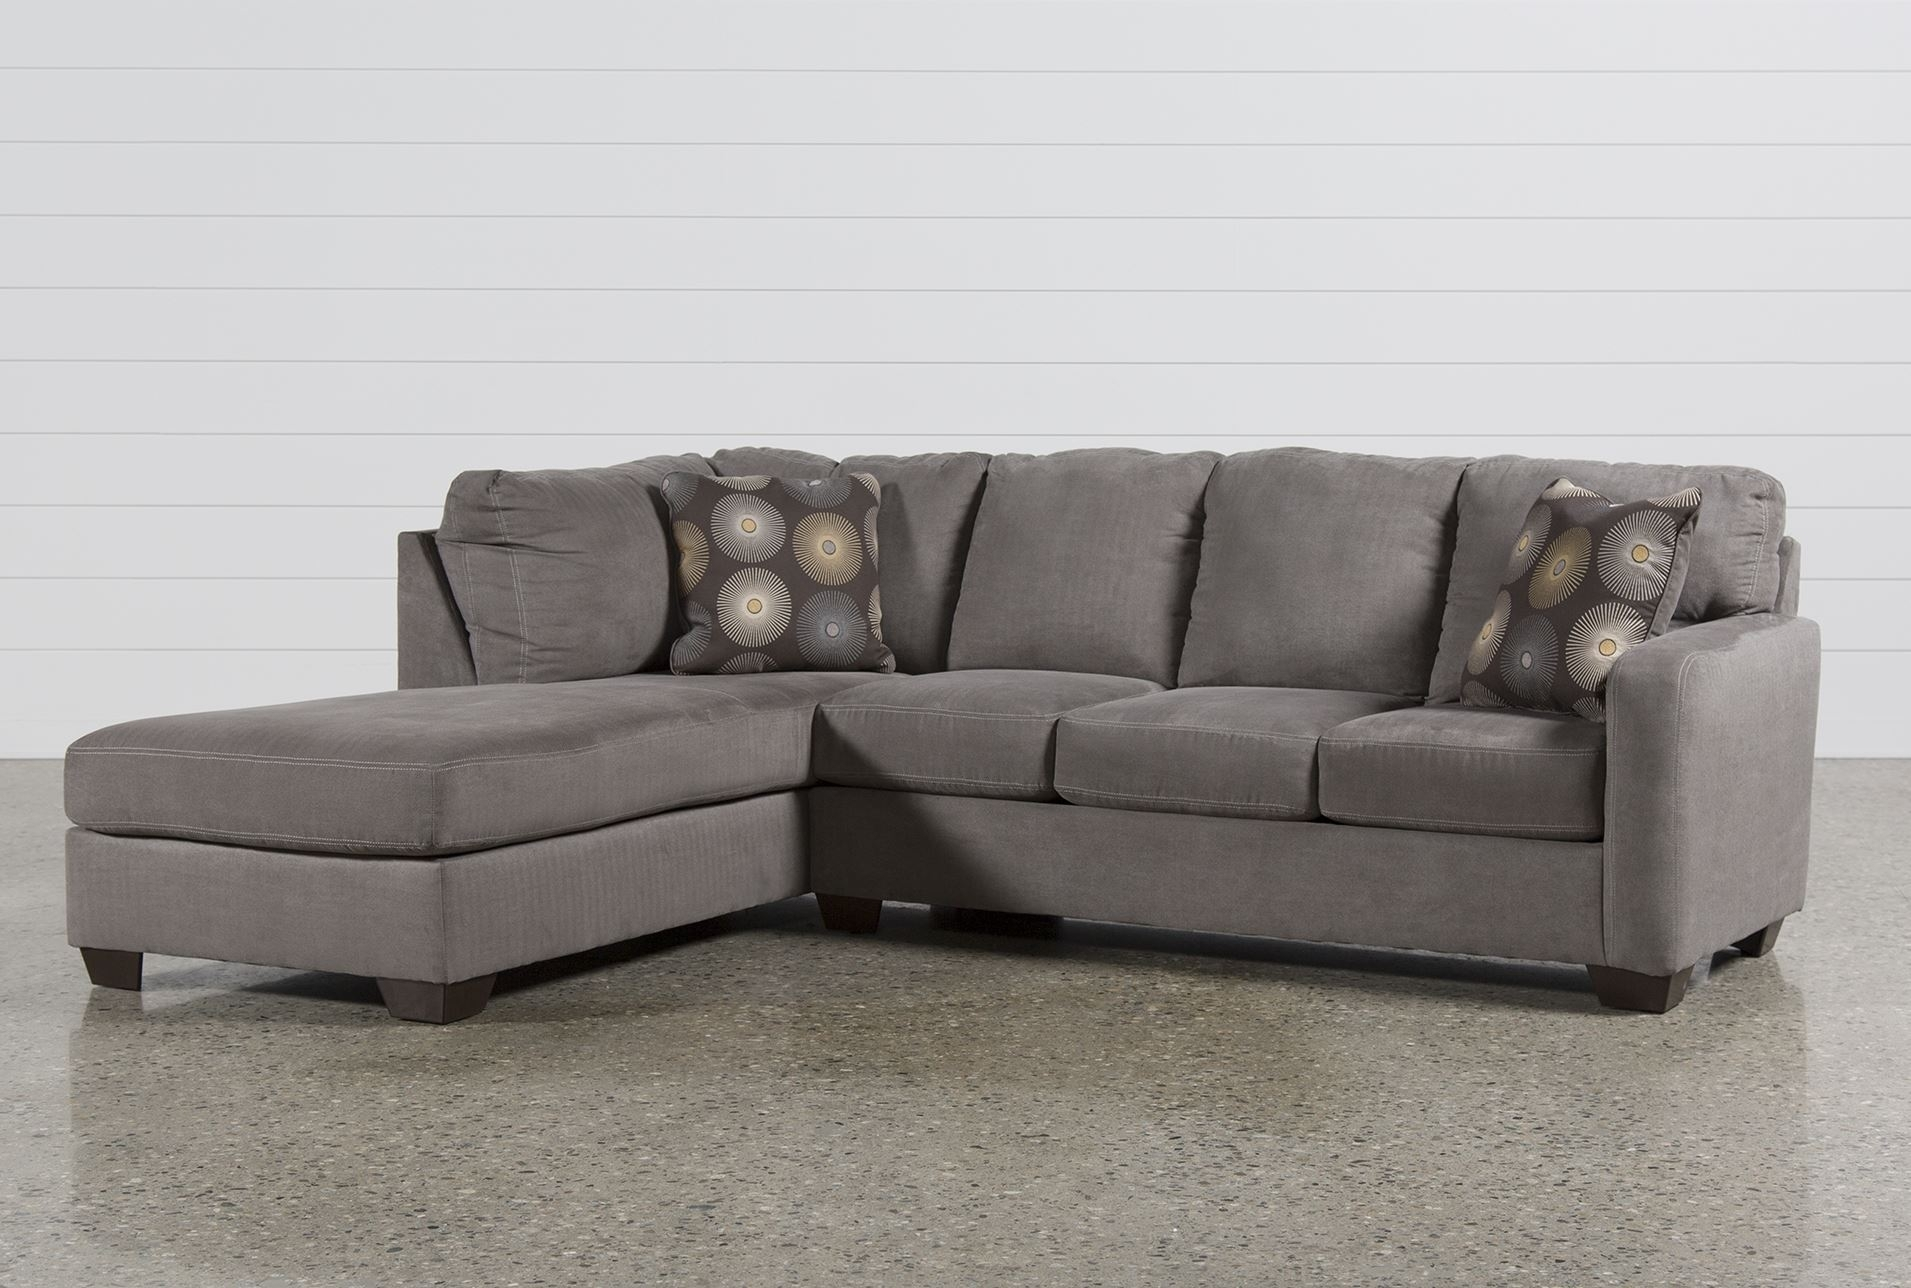 Laf Chaise Sectional Sofa | Baci Living Room for Arrowmask 2 Piece Sectionals With Sleeper & Right Facing Chaise (Image 12 of 30)